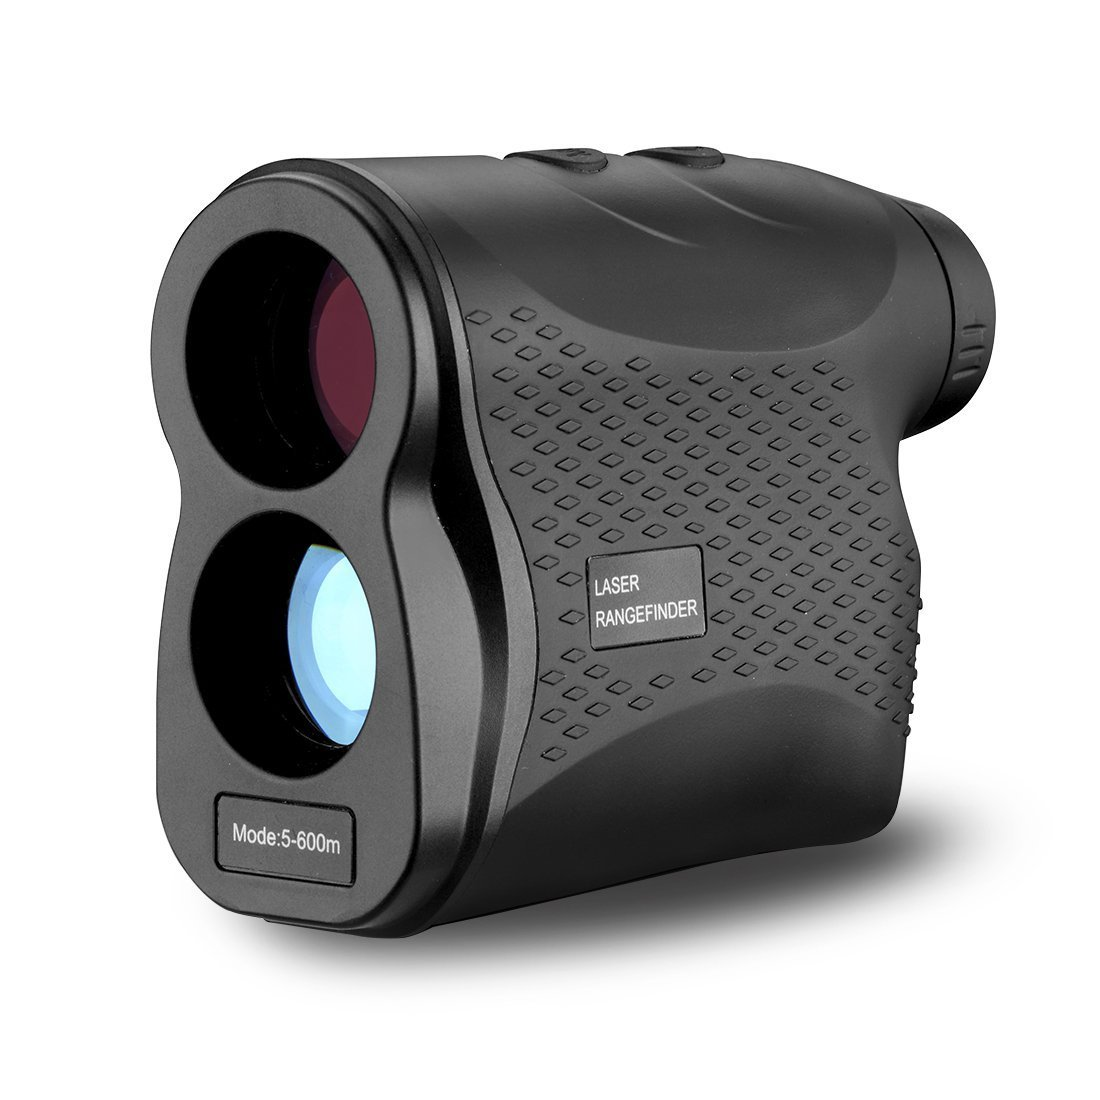 DEKO Golf Laser Rangefinder,Laser Range Finder with Slope, Fog,Scan,Precision Speed Measurement